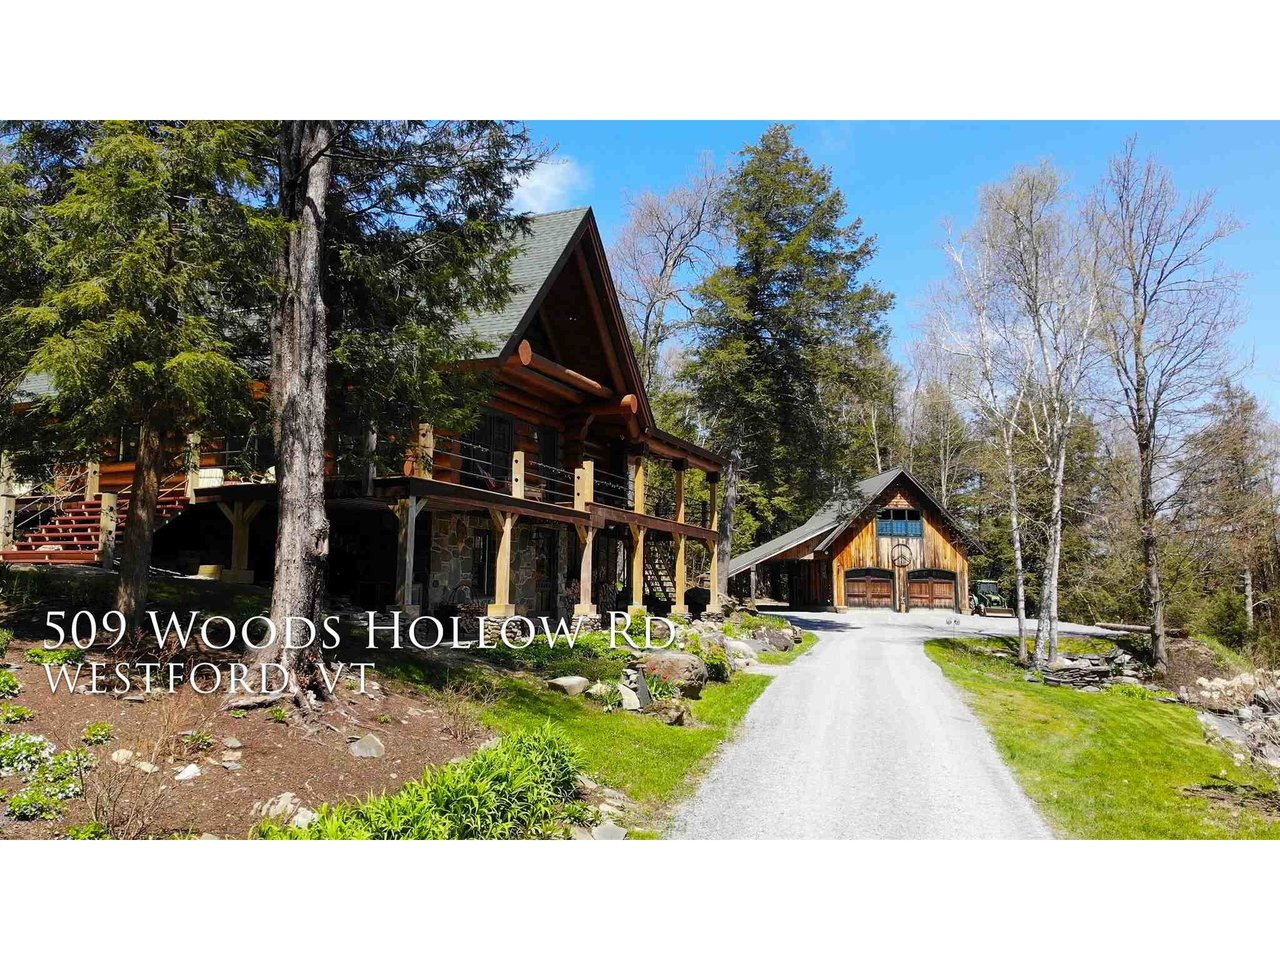 509 Woods Hollow Road, Westford